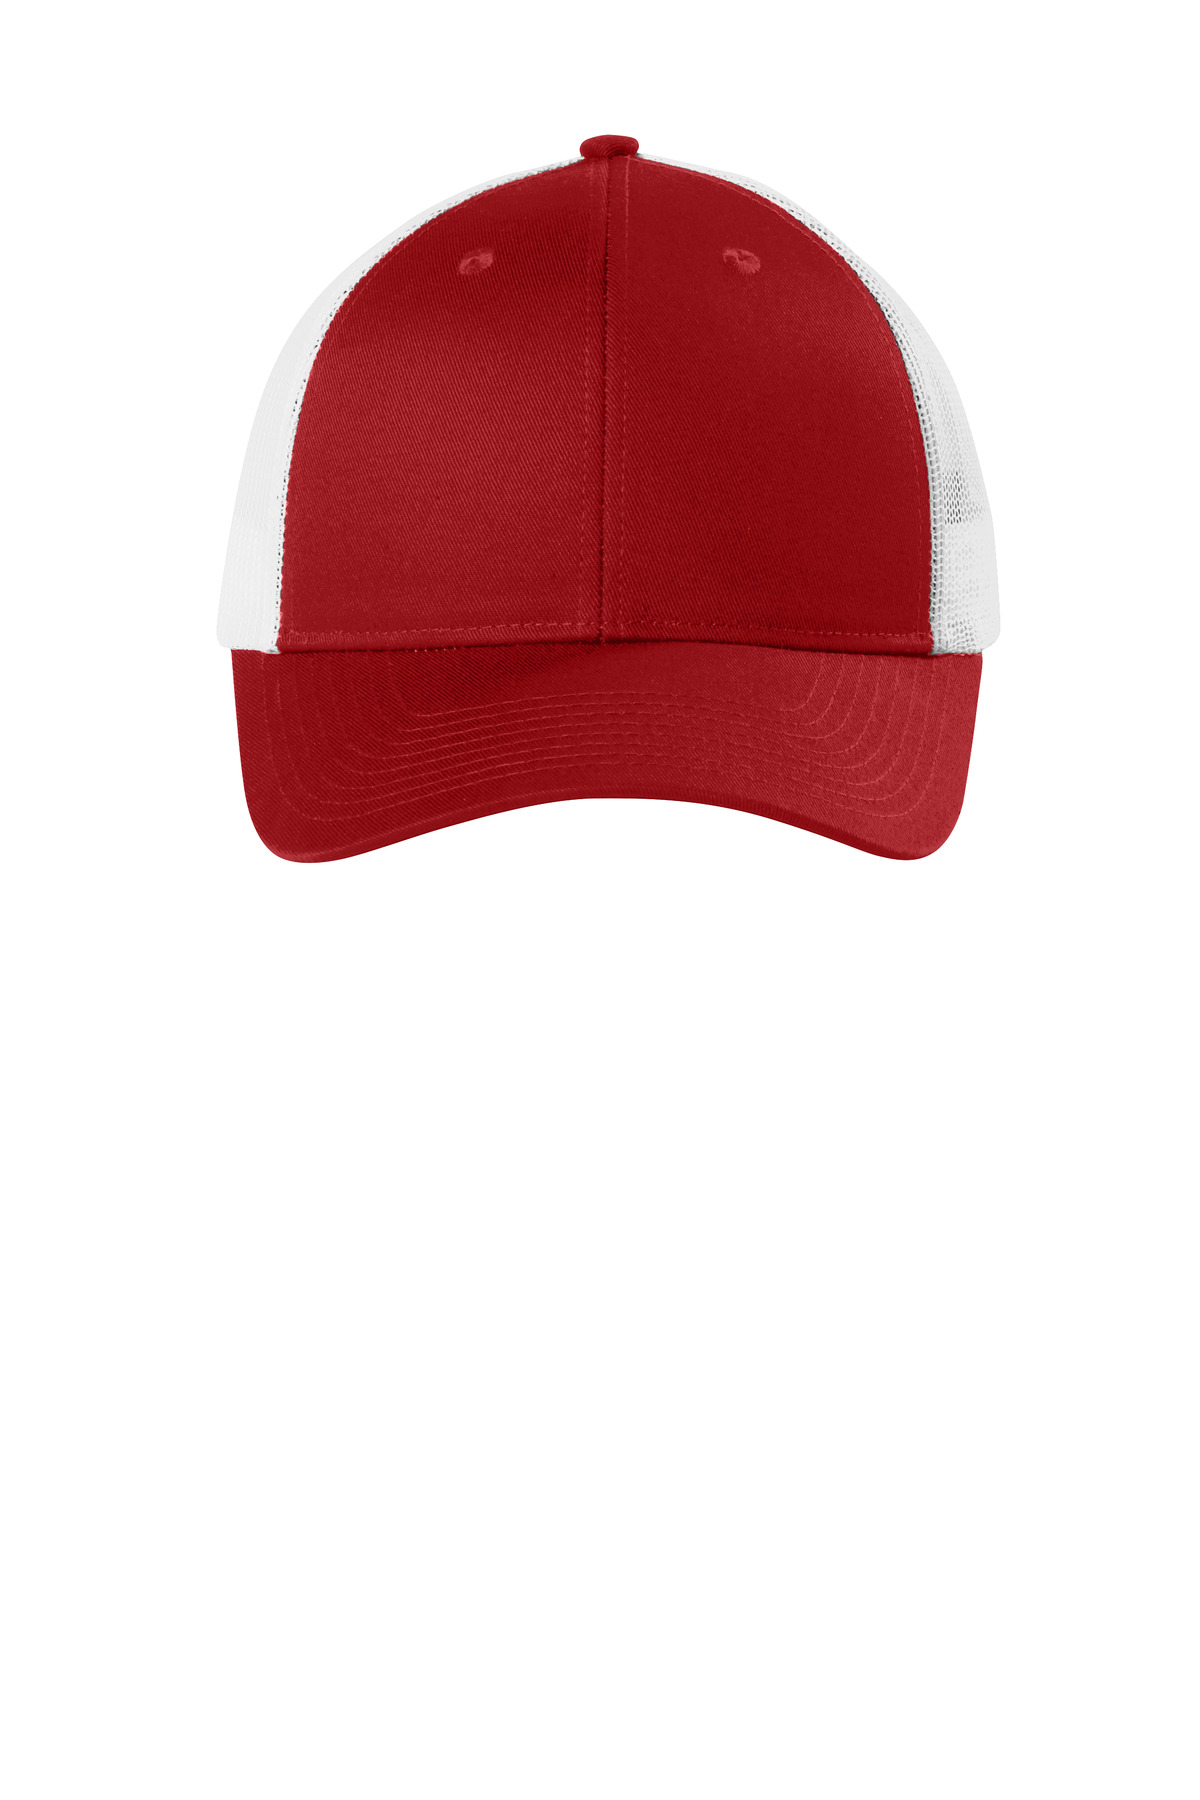 Port Authority  ®  Low-Profile Snapback Trucker Cap. C112LP - Flame Red/ White